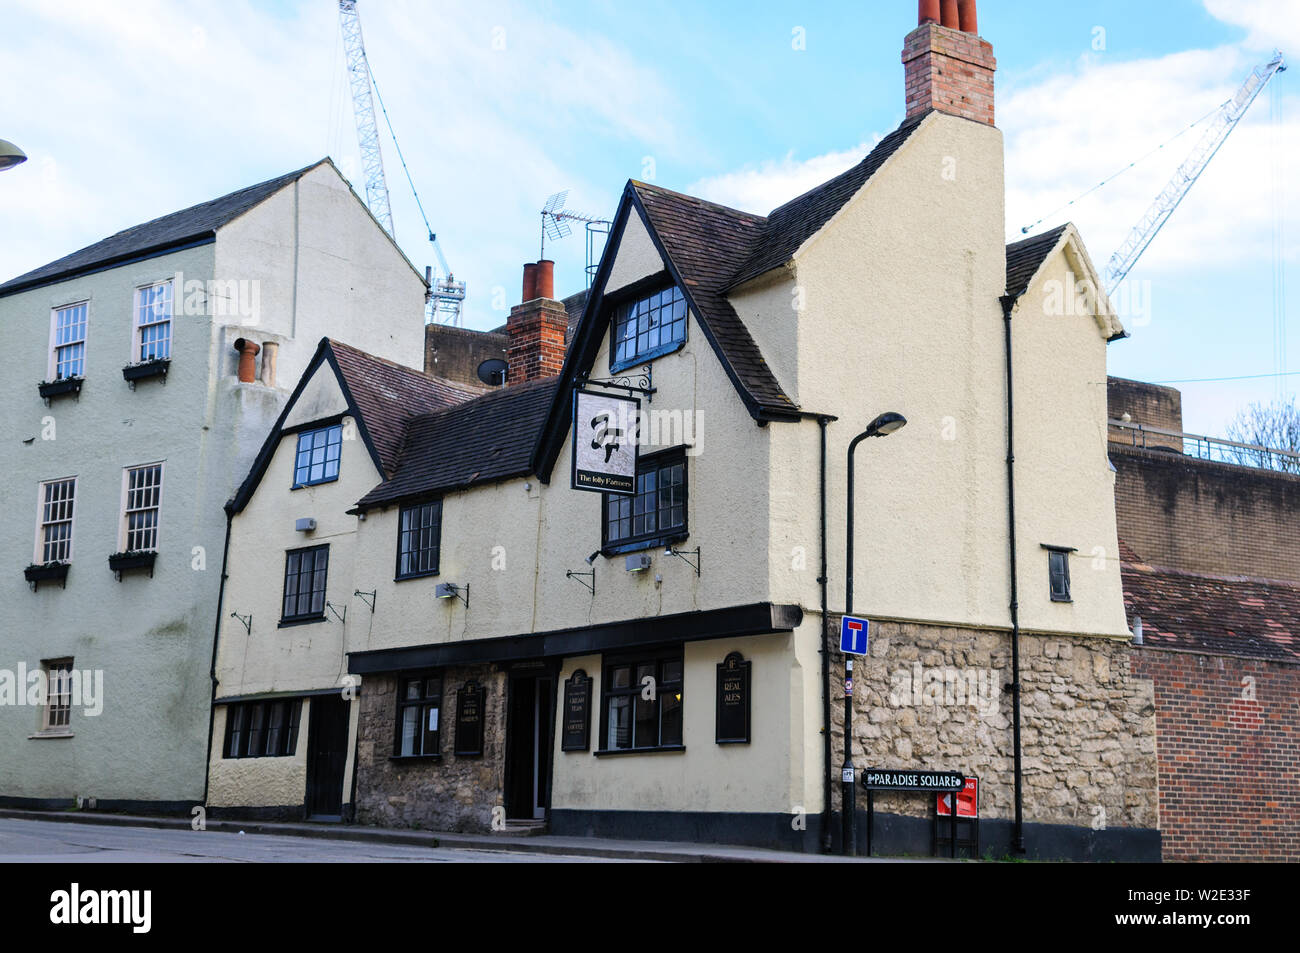 The Jolly Farmers Pub is one of the oldest public houses in Oxfordshire and in modern times the central hub of the vibrant Oxford gay scene. - Stock Image